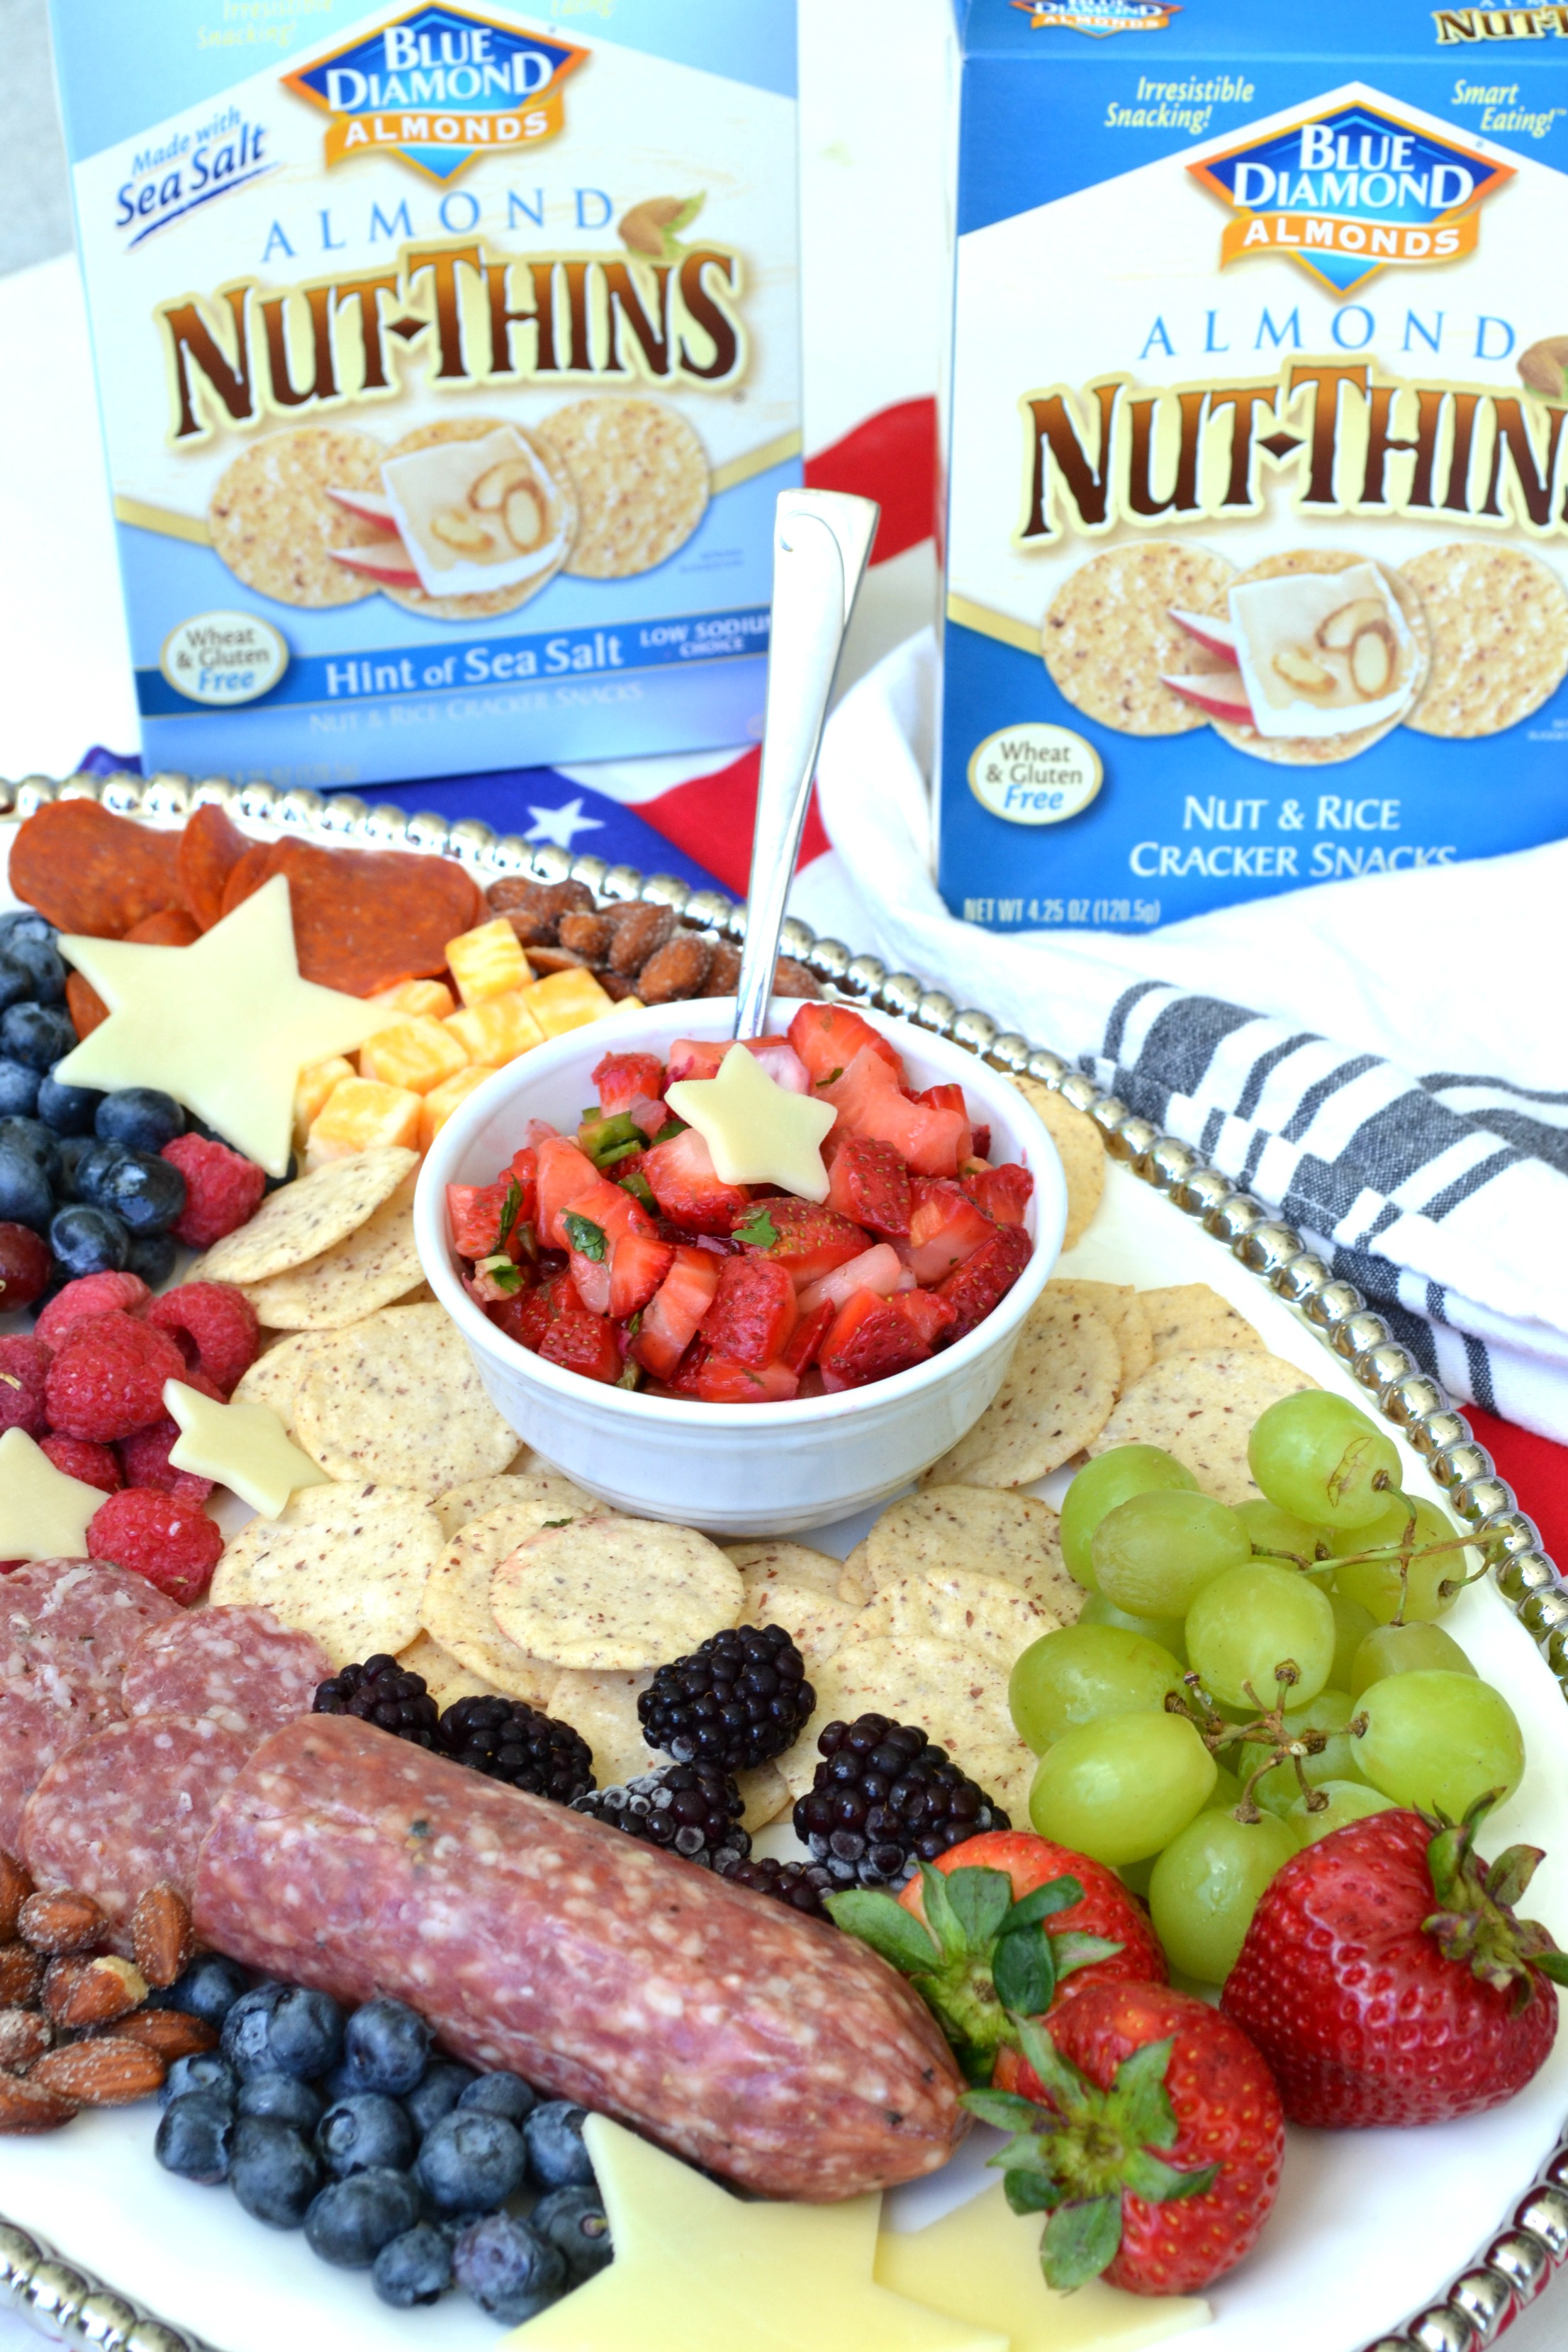 The Ultimate Summer Charcuterie Board #BlueDiamond #NutThins2Win #BD #CraveVictoriously #SummerCrave